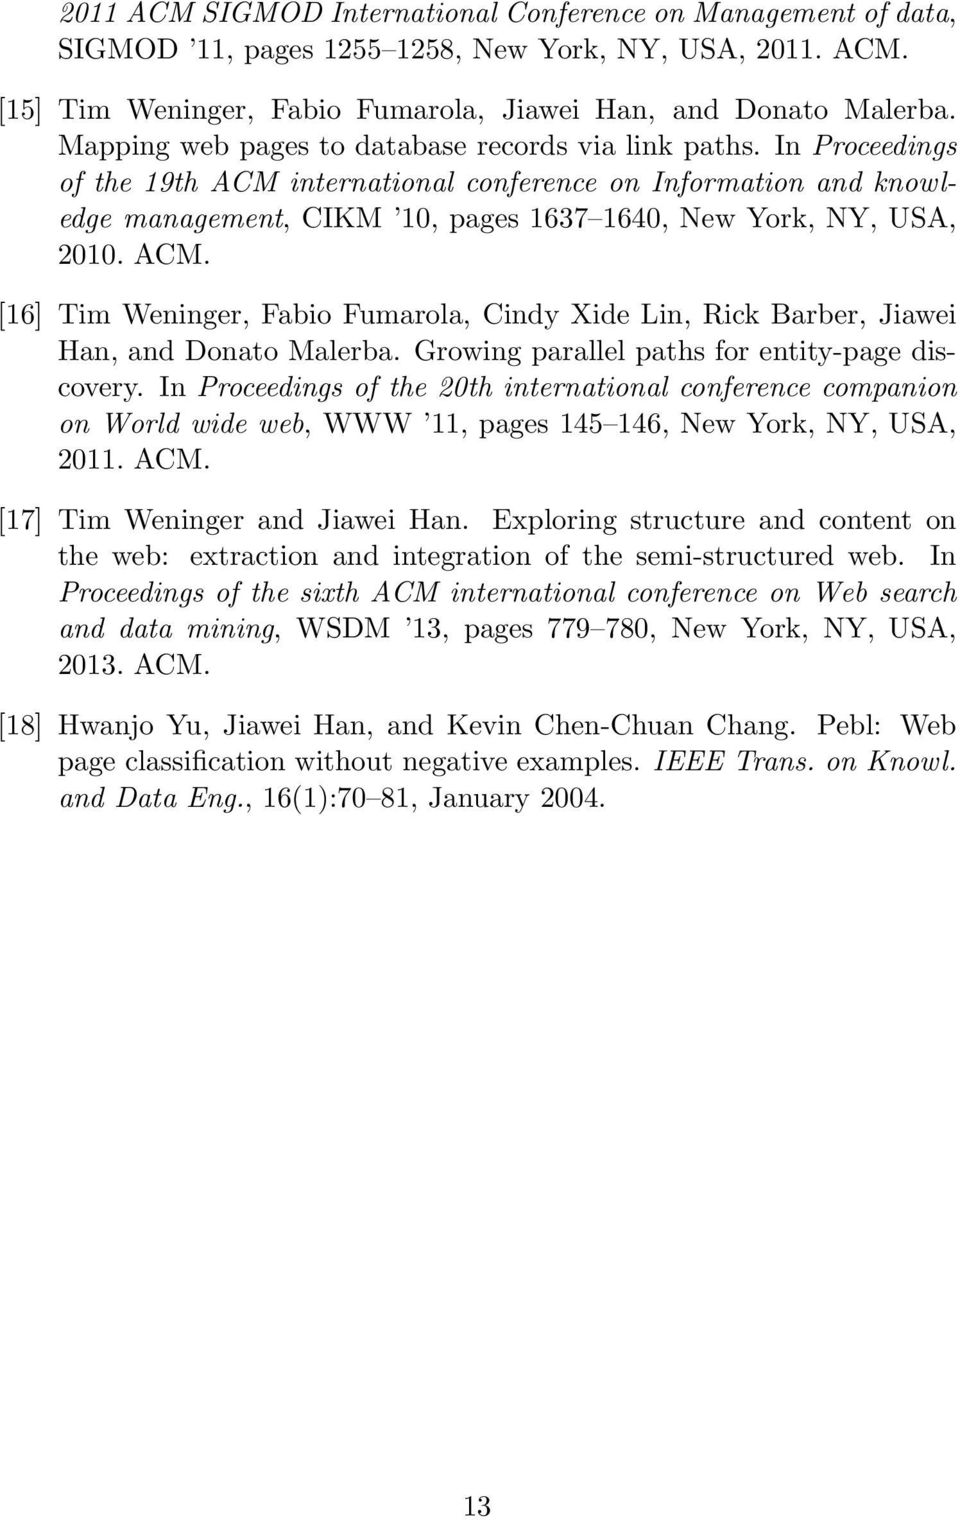 In Proceedings of the 19th ACM international conference on Information and knowledge management, CIKM 10, pages 1637 1640, New York, NY, USA, 2010. ACM. [16] Tim Weninger, Fabio Fumarola, Cindy Xide Lin, Rick Barber, Jiawei Han, and Donato Malerba.